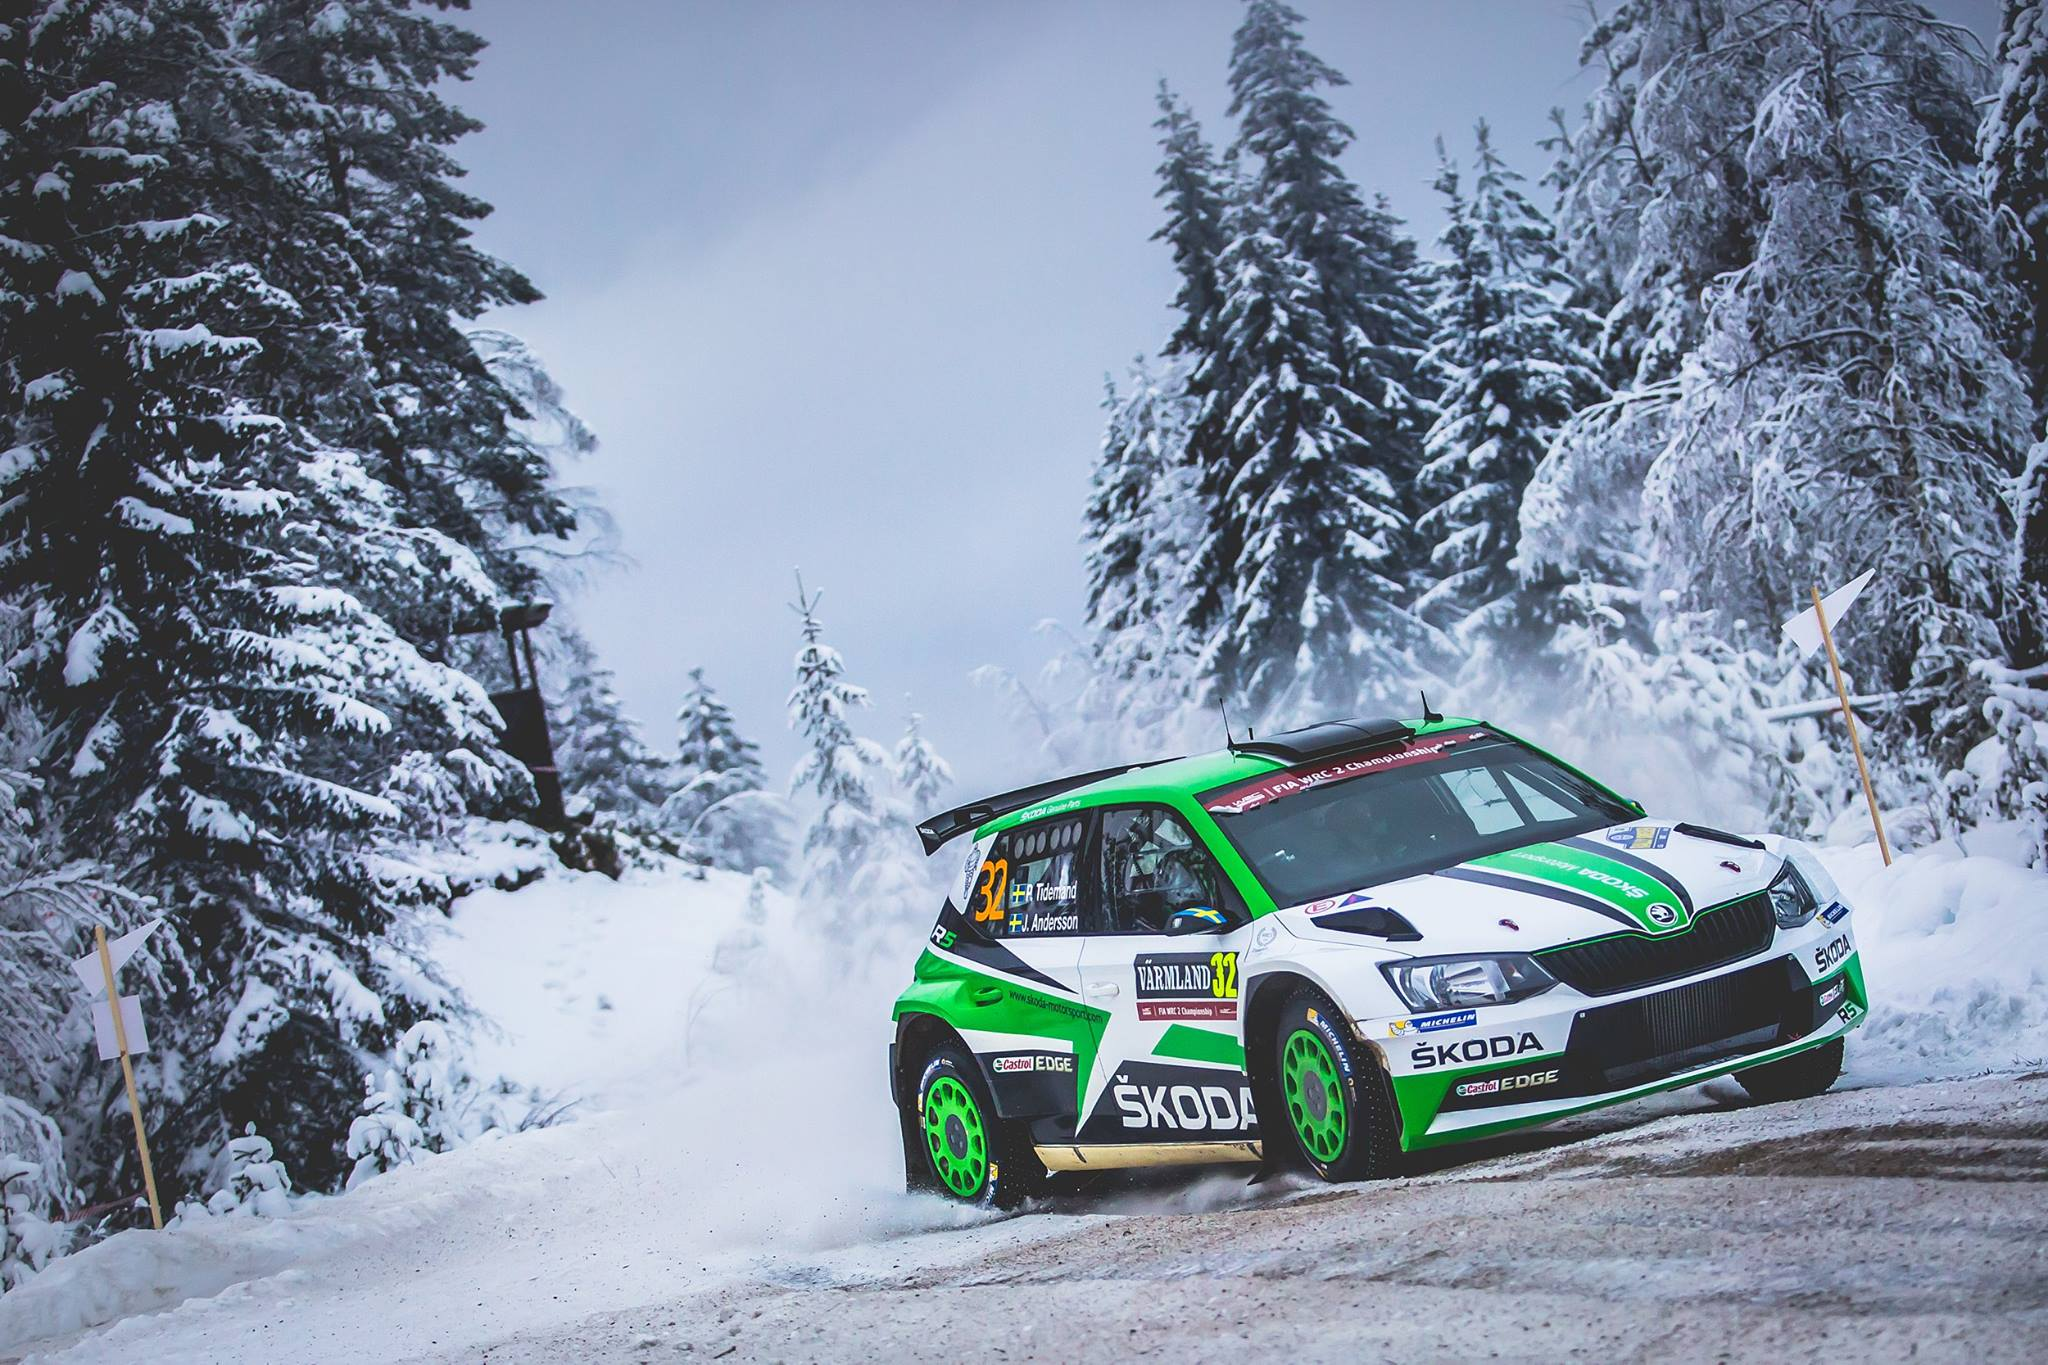 wrc latvala gives new yaris first victory at rally sweden gtspirit. Black Bedroom Furniture Sets. Home Design Ideas